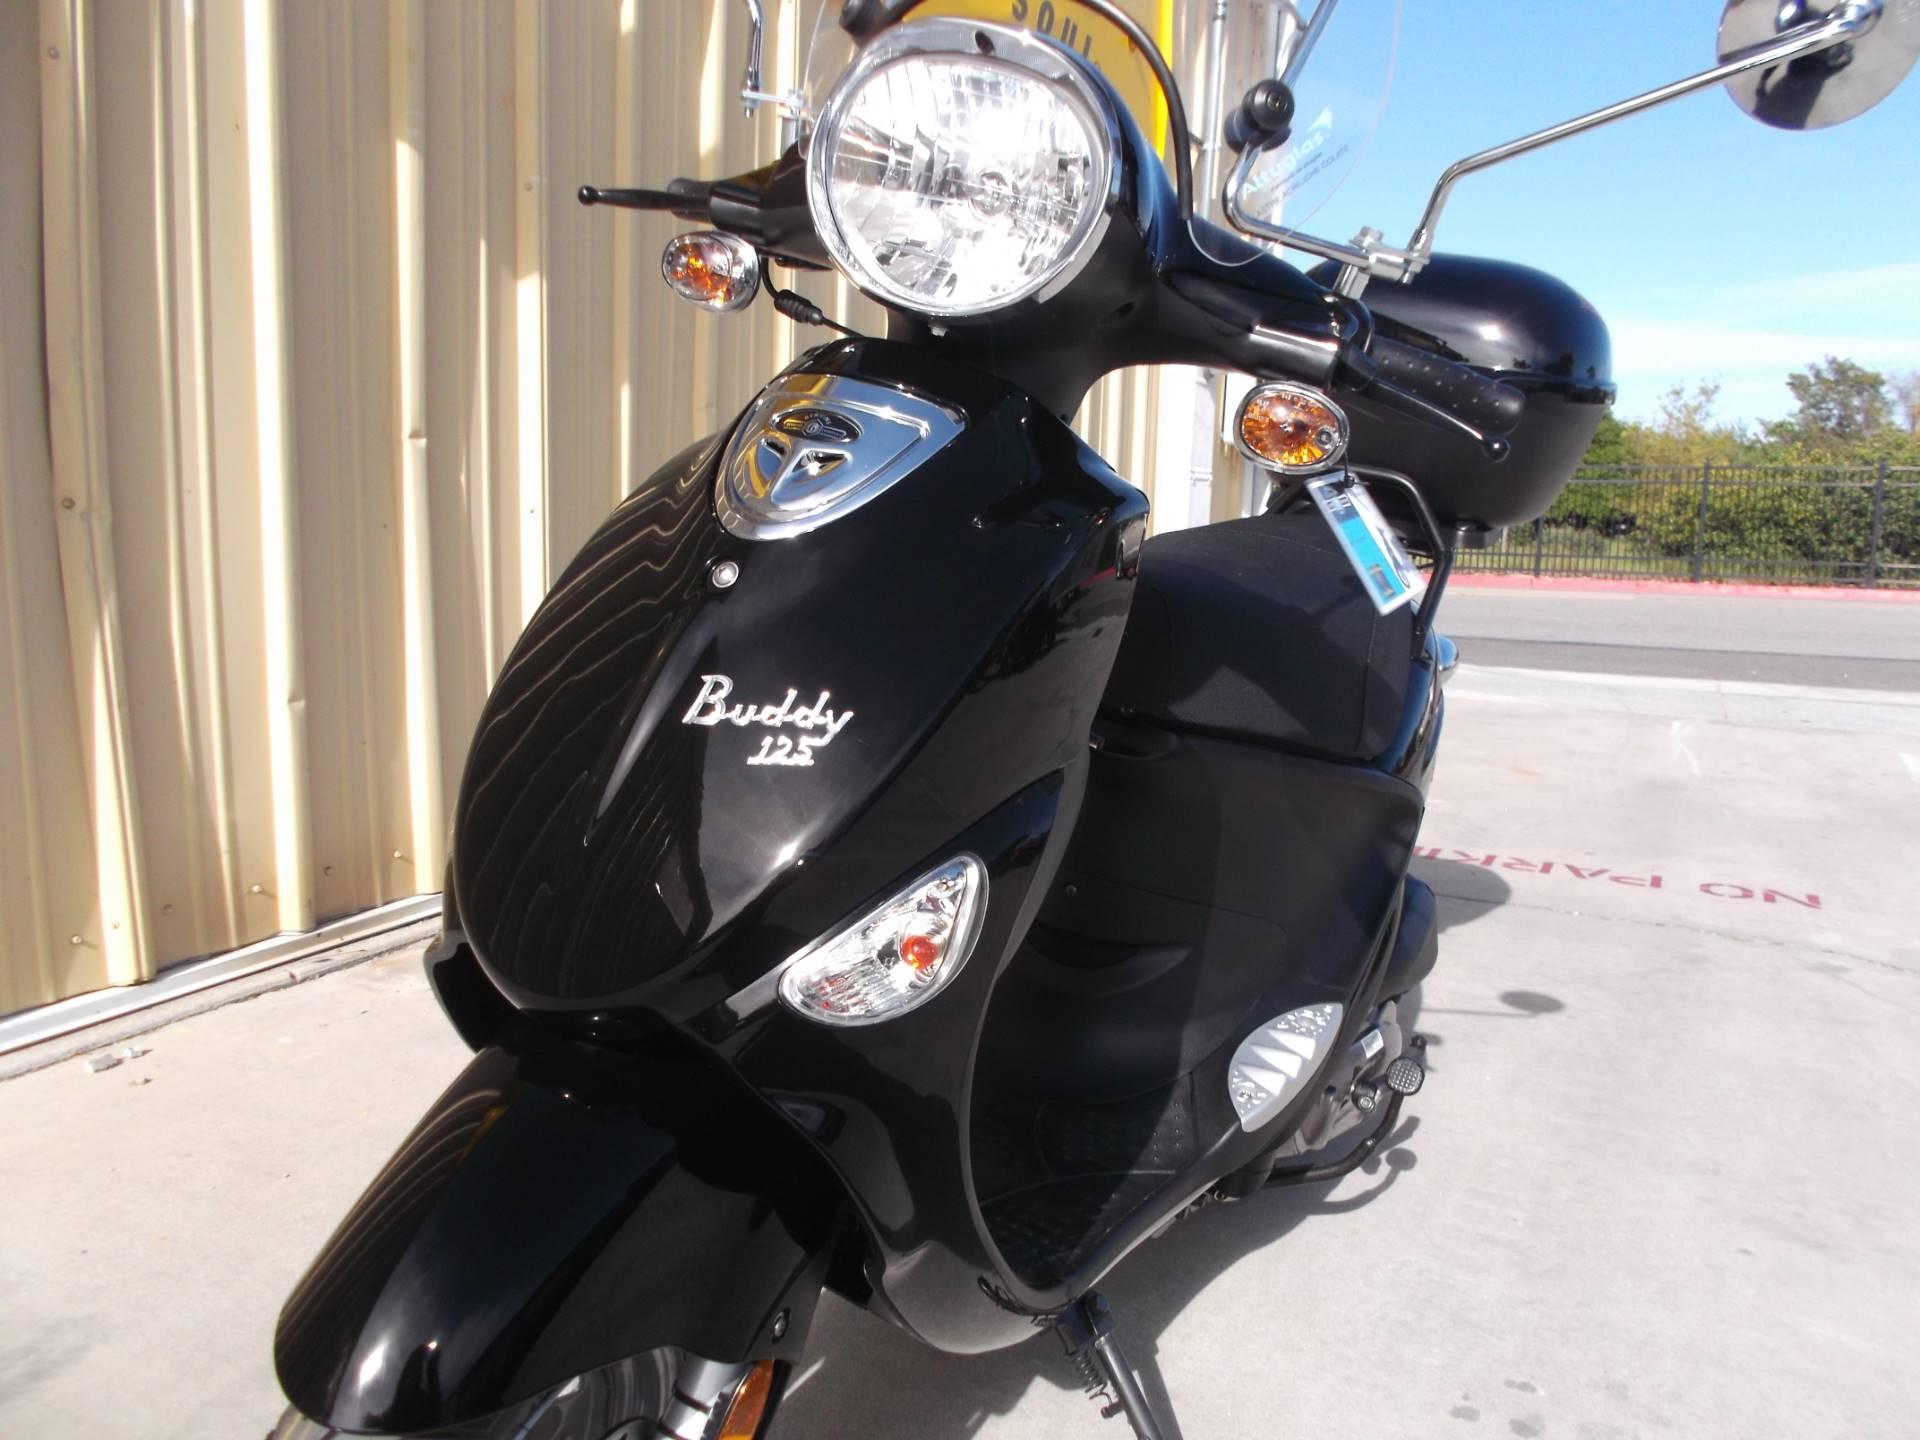 2018 Genuine Scooters Buddy 125 in Paso Robles, California - Photo 11